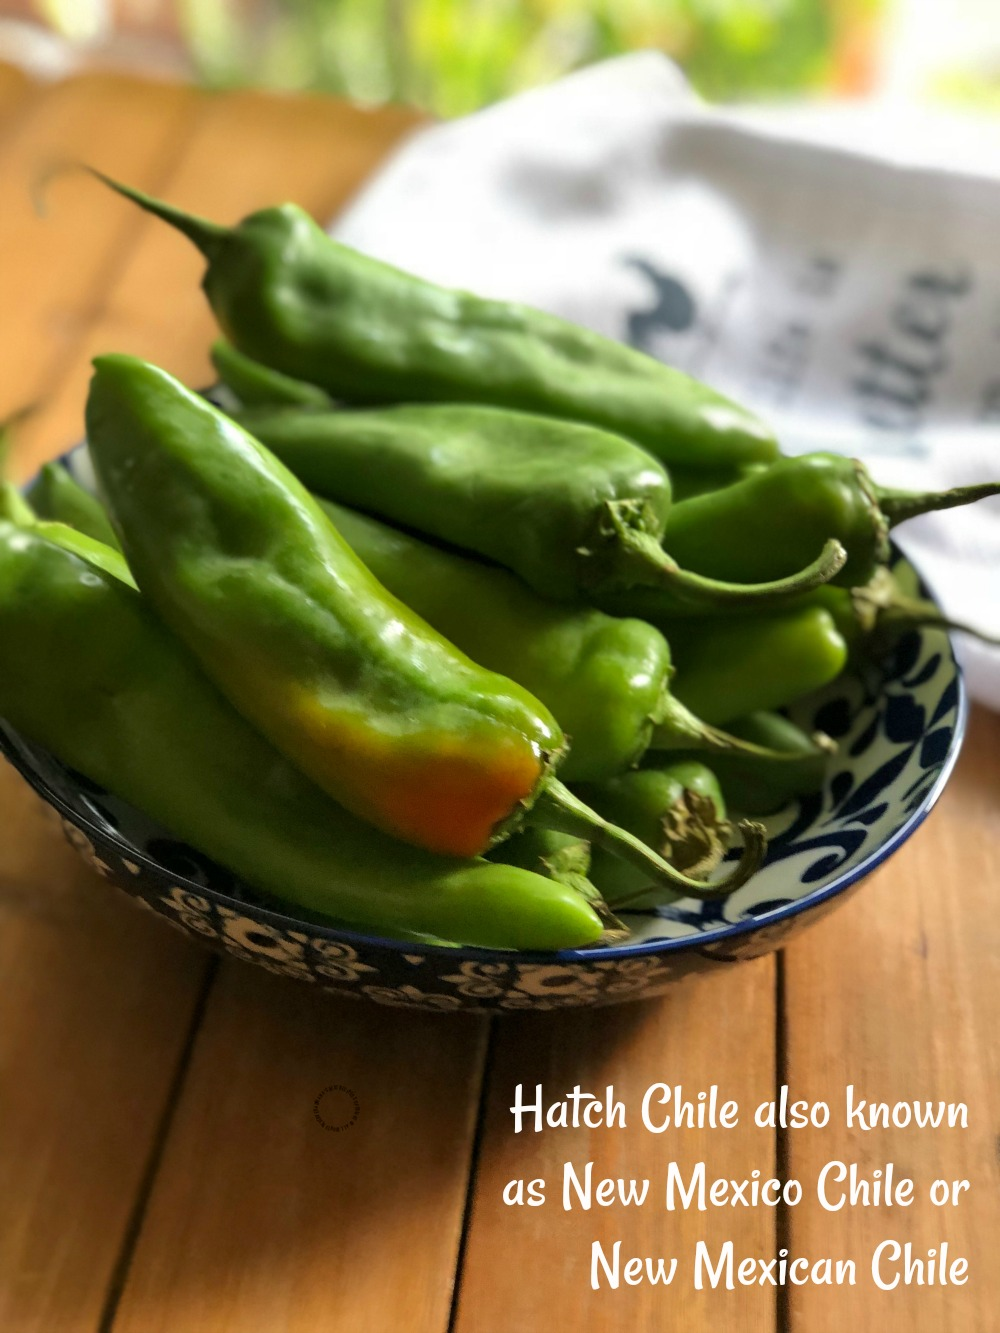 Hatch Chile also known as New Mexico Chile or New Mexican Chile